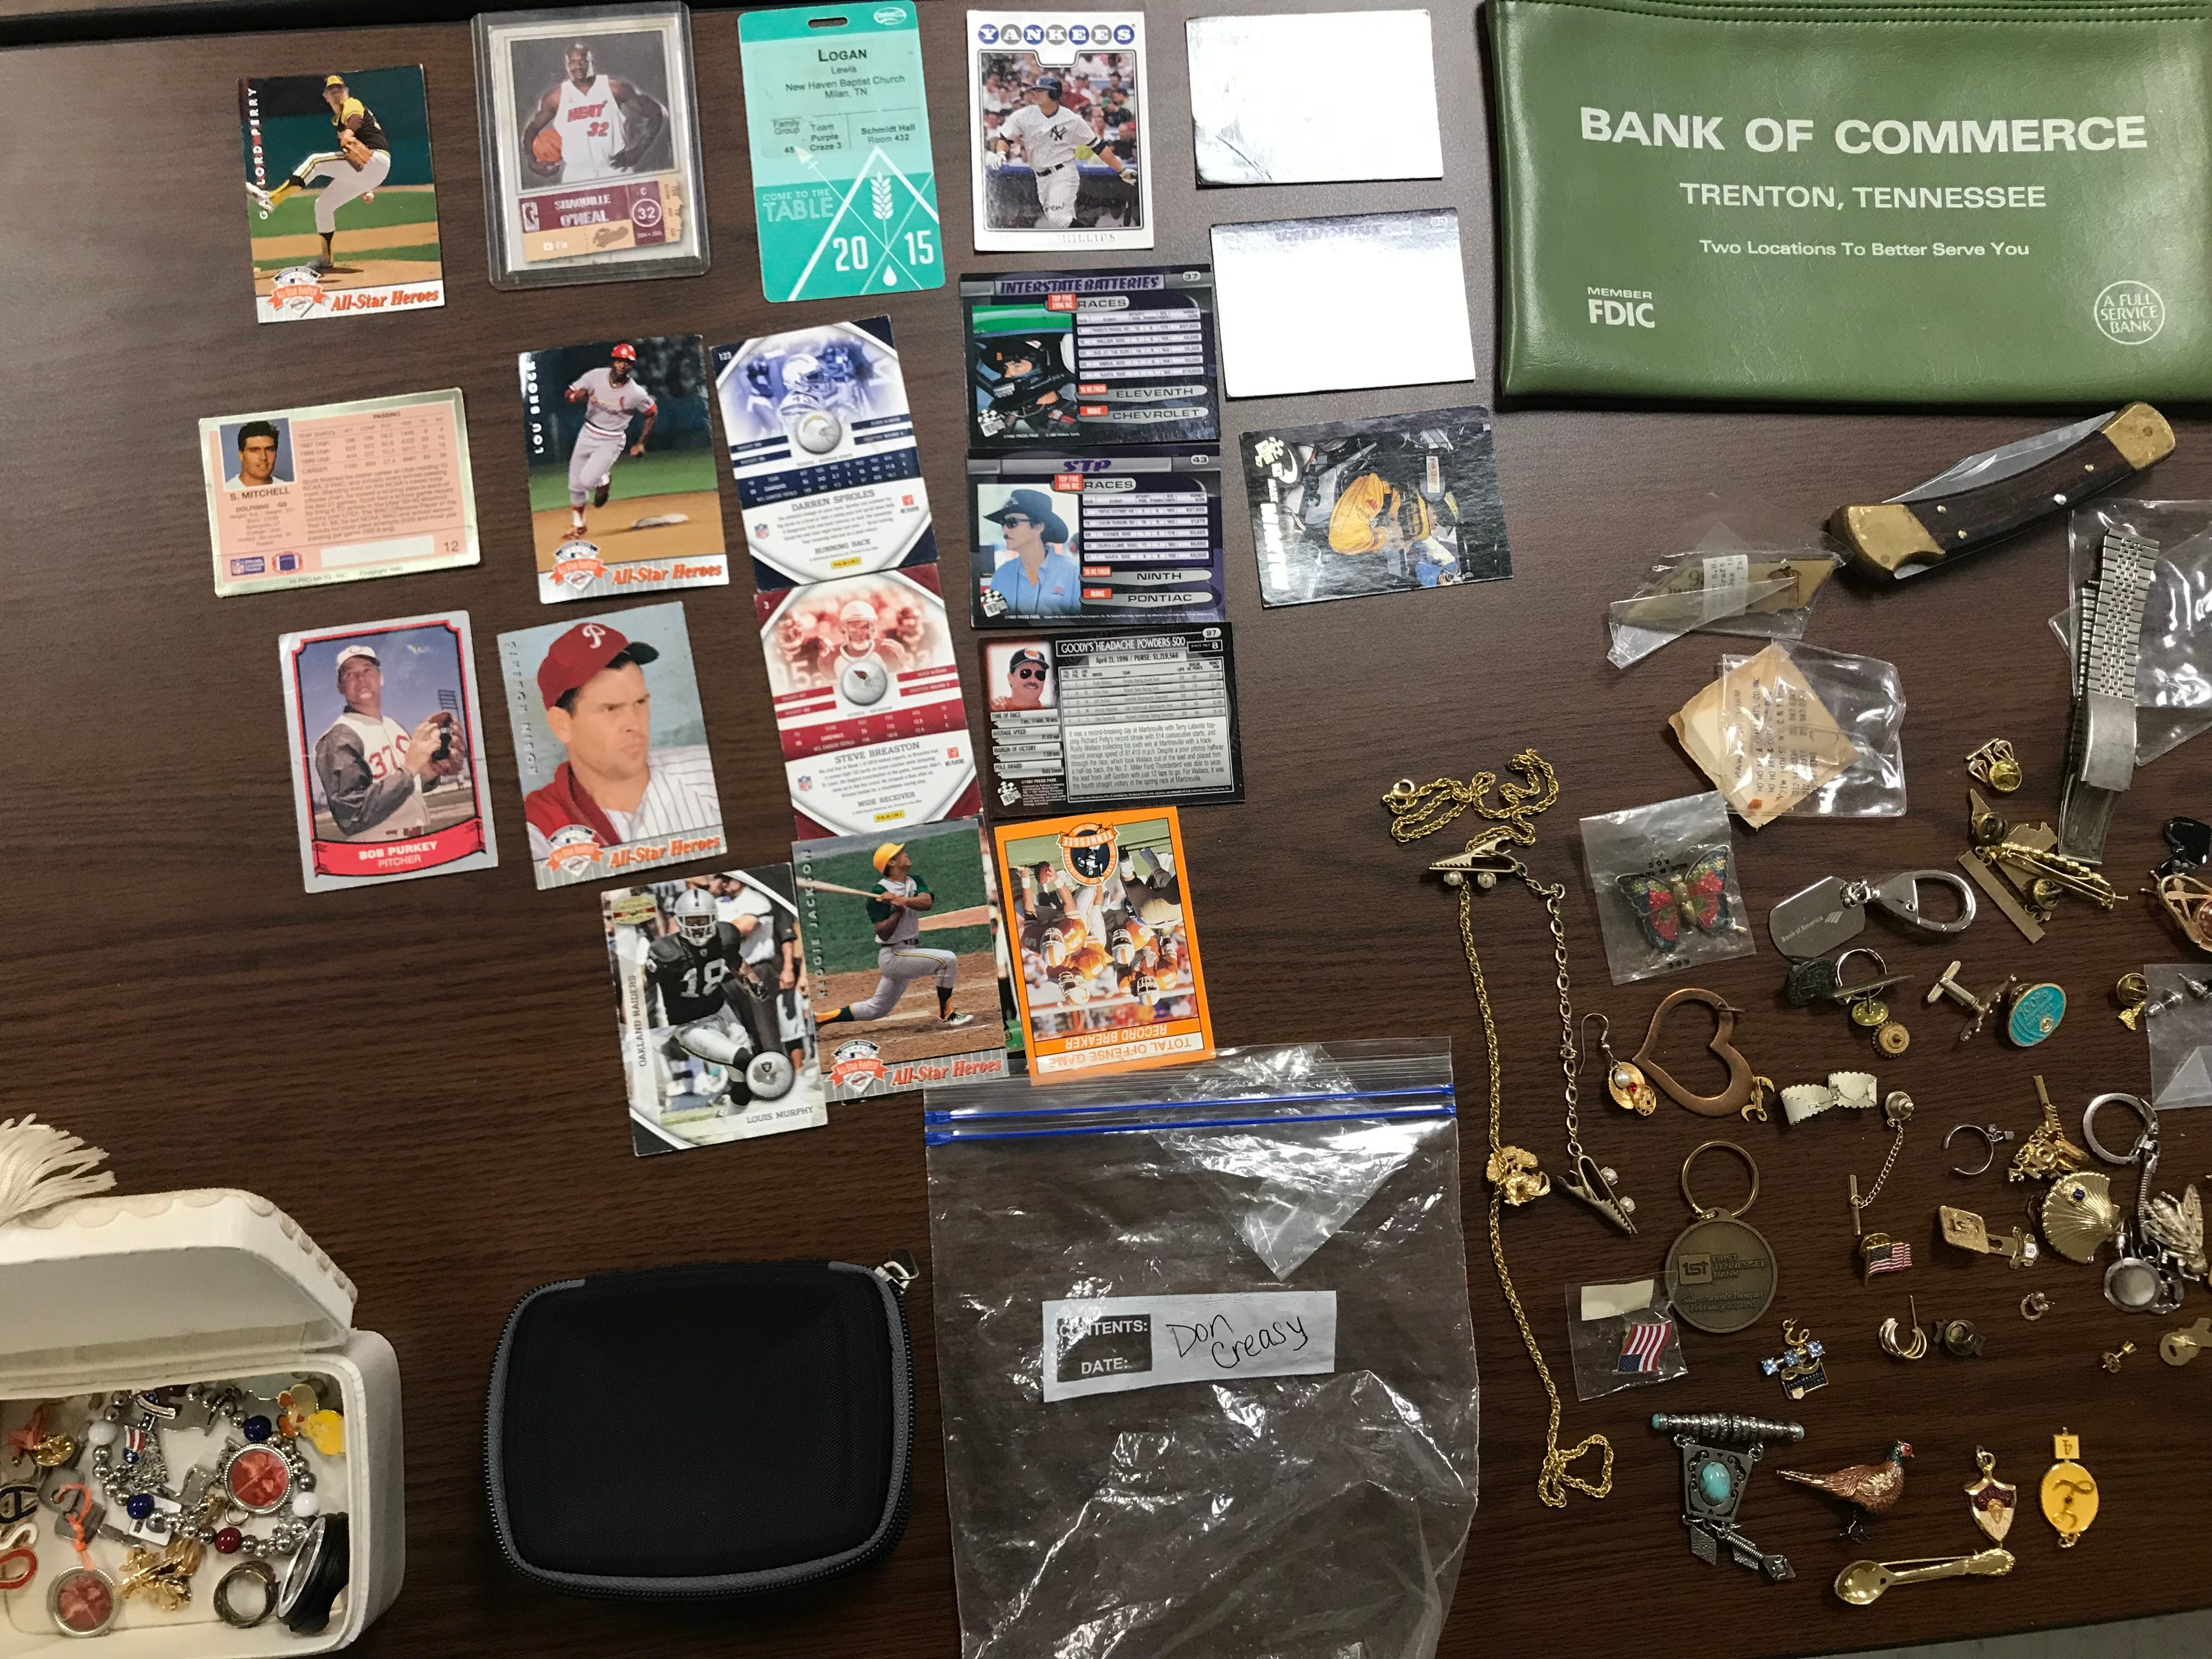 Baseball cards and jewelry were among hundreds of items Madison County Sheriff's Office recovered from a theft ring believed to be targeting grieving families and others throughout West Tennessee.